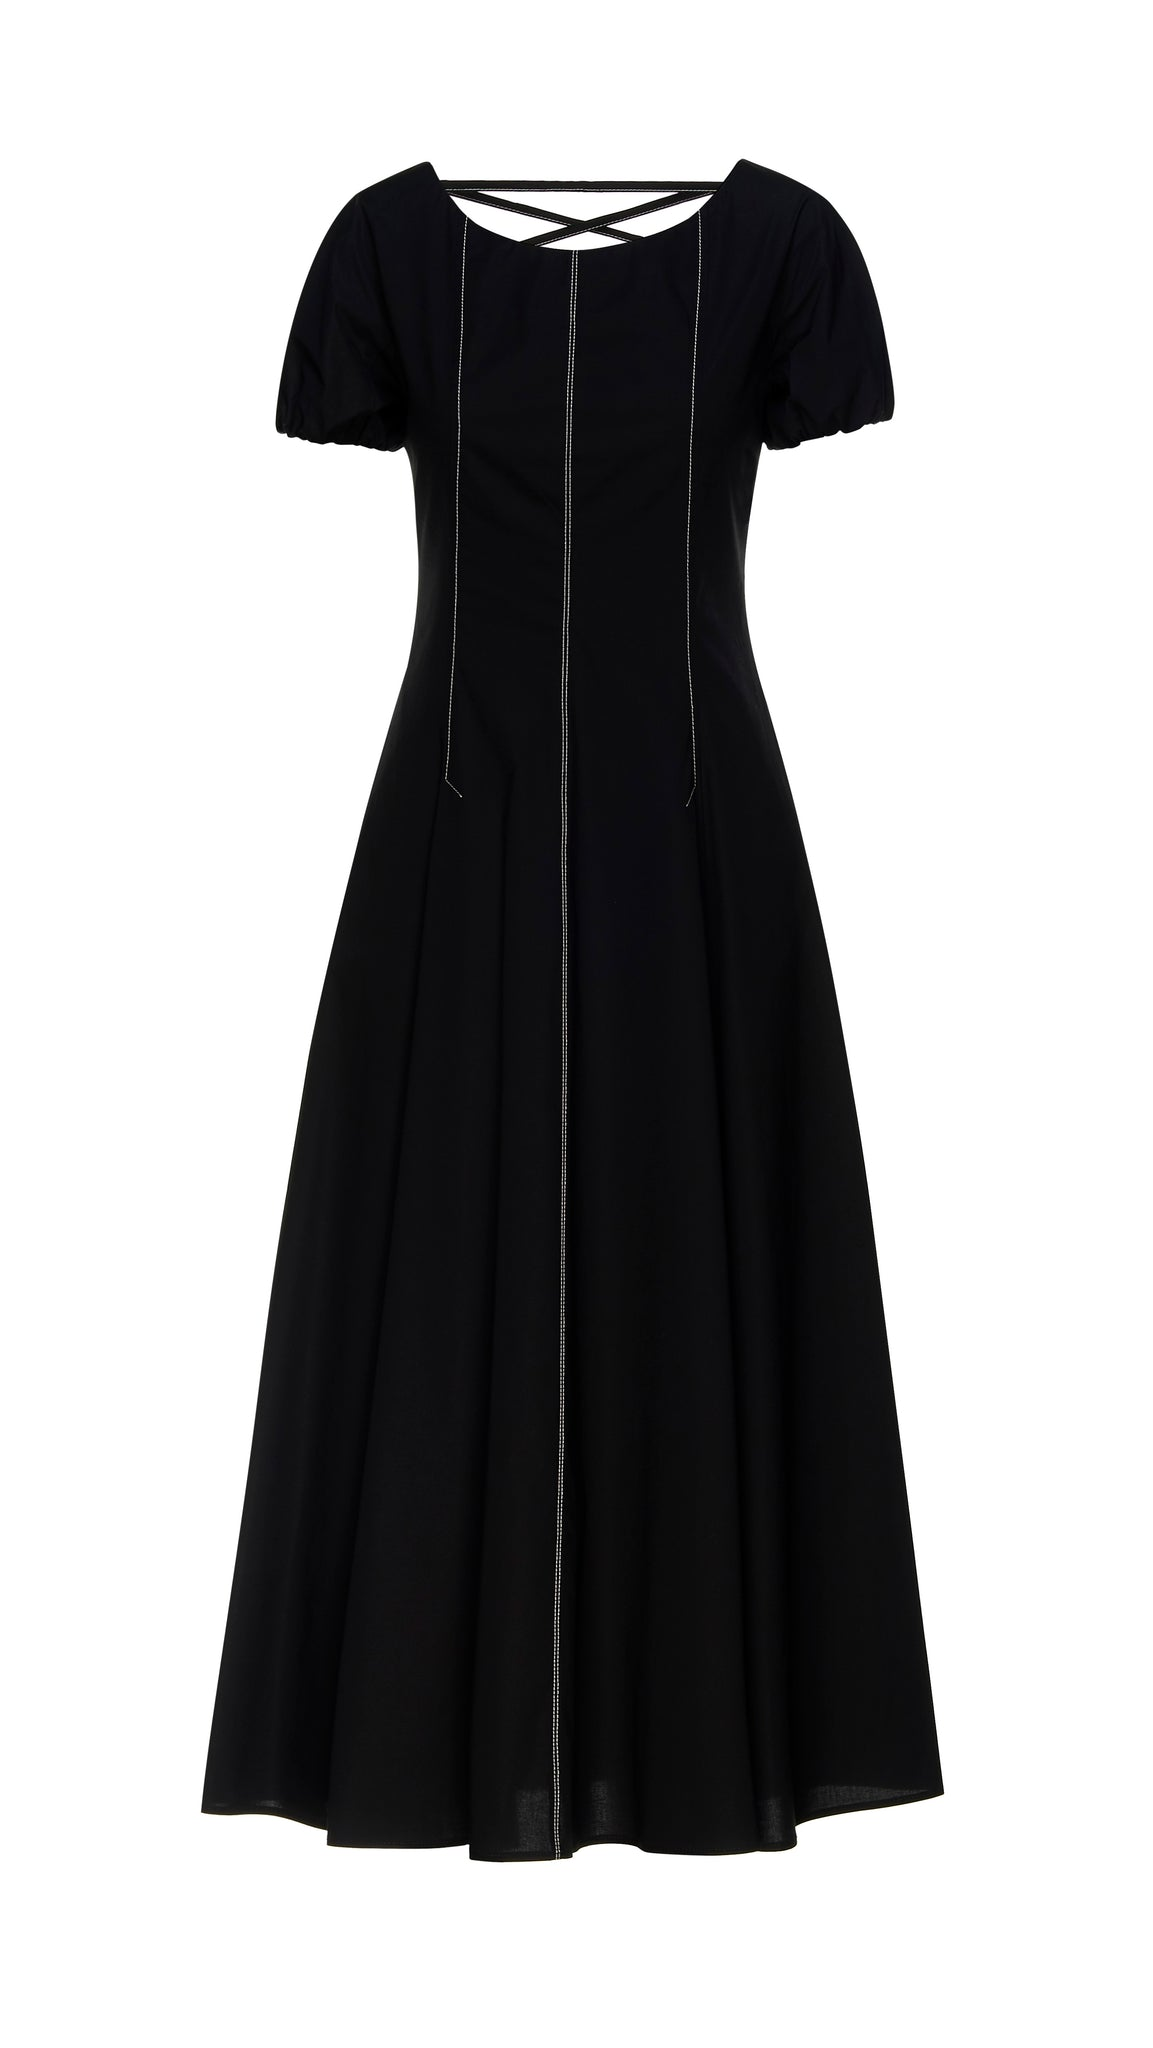 black dress with corset style laces on the rear